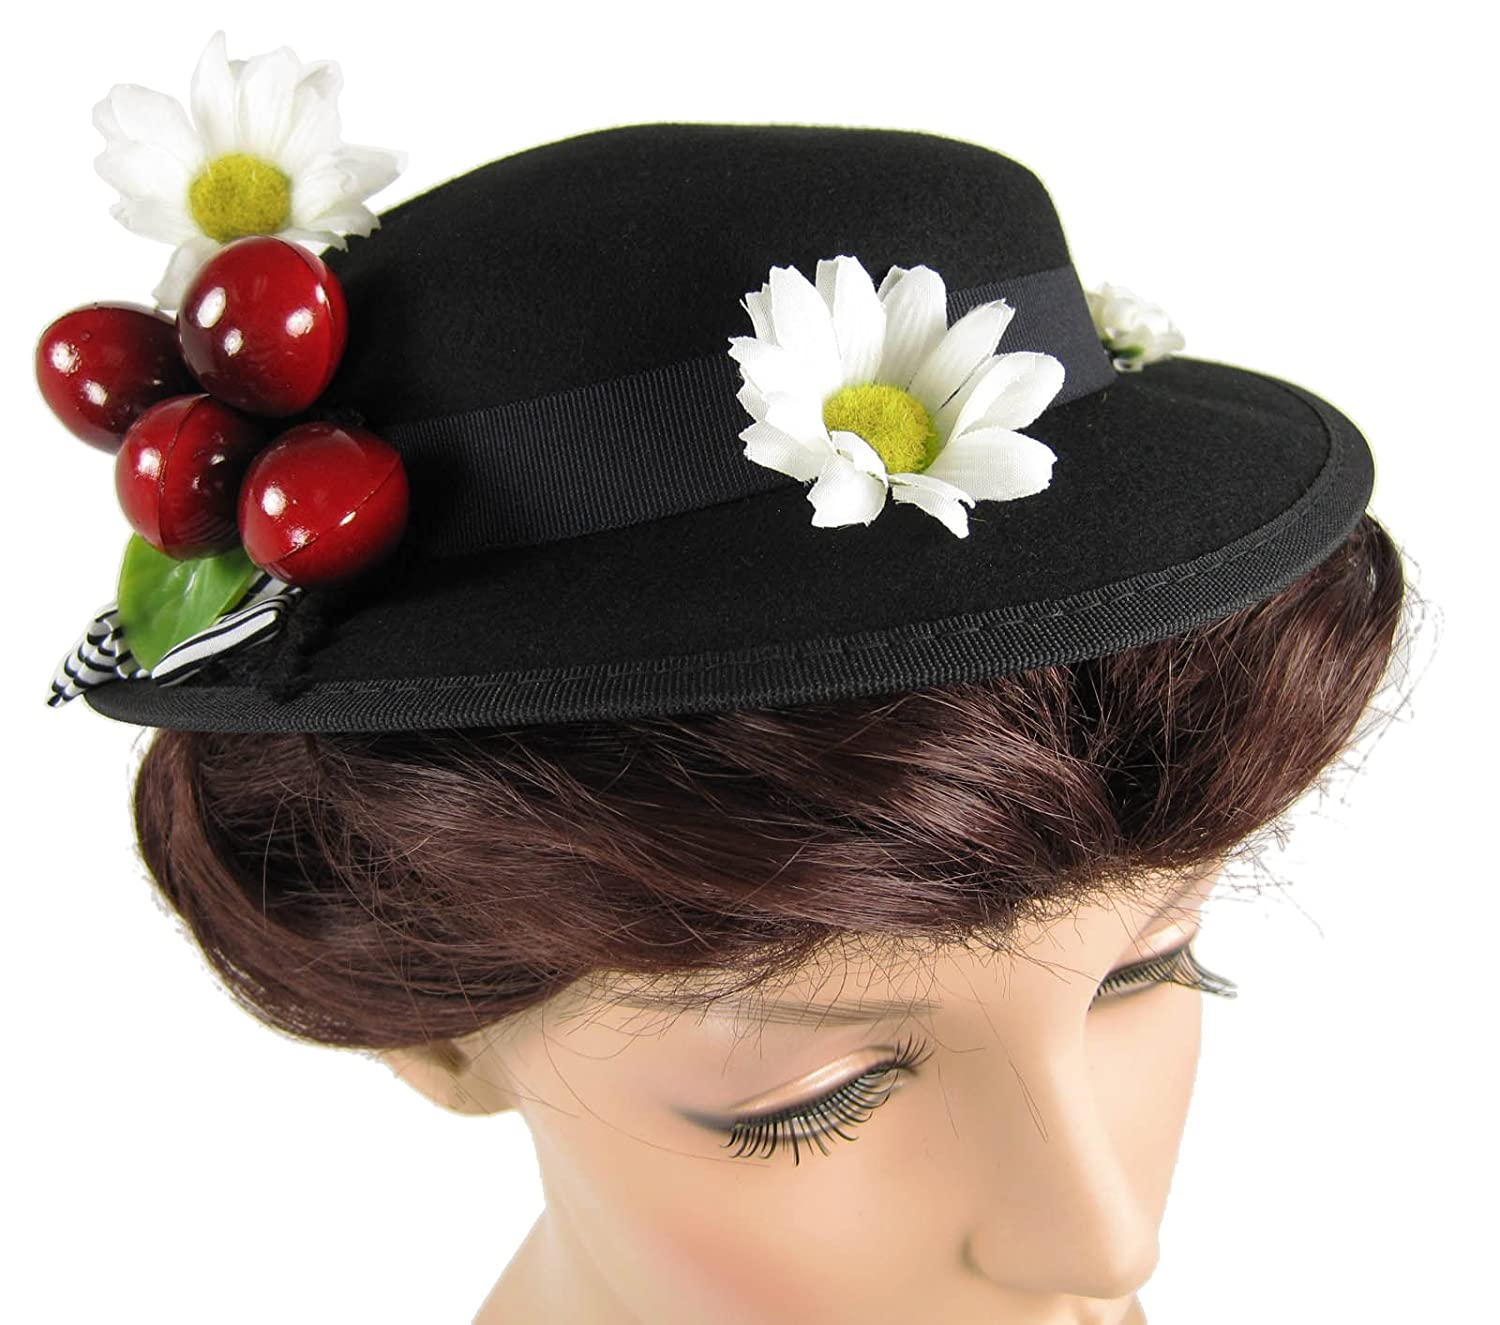 1900s, 1910s, WW1, Titanic Costumes Womens English Nanny Poppins Costume Hat $48.99 AT vintagedancer.com